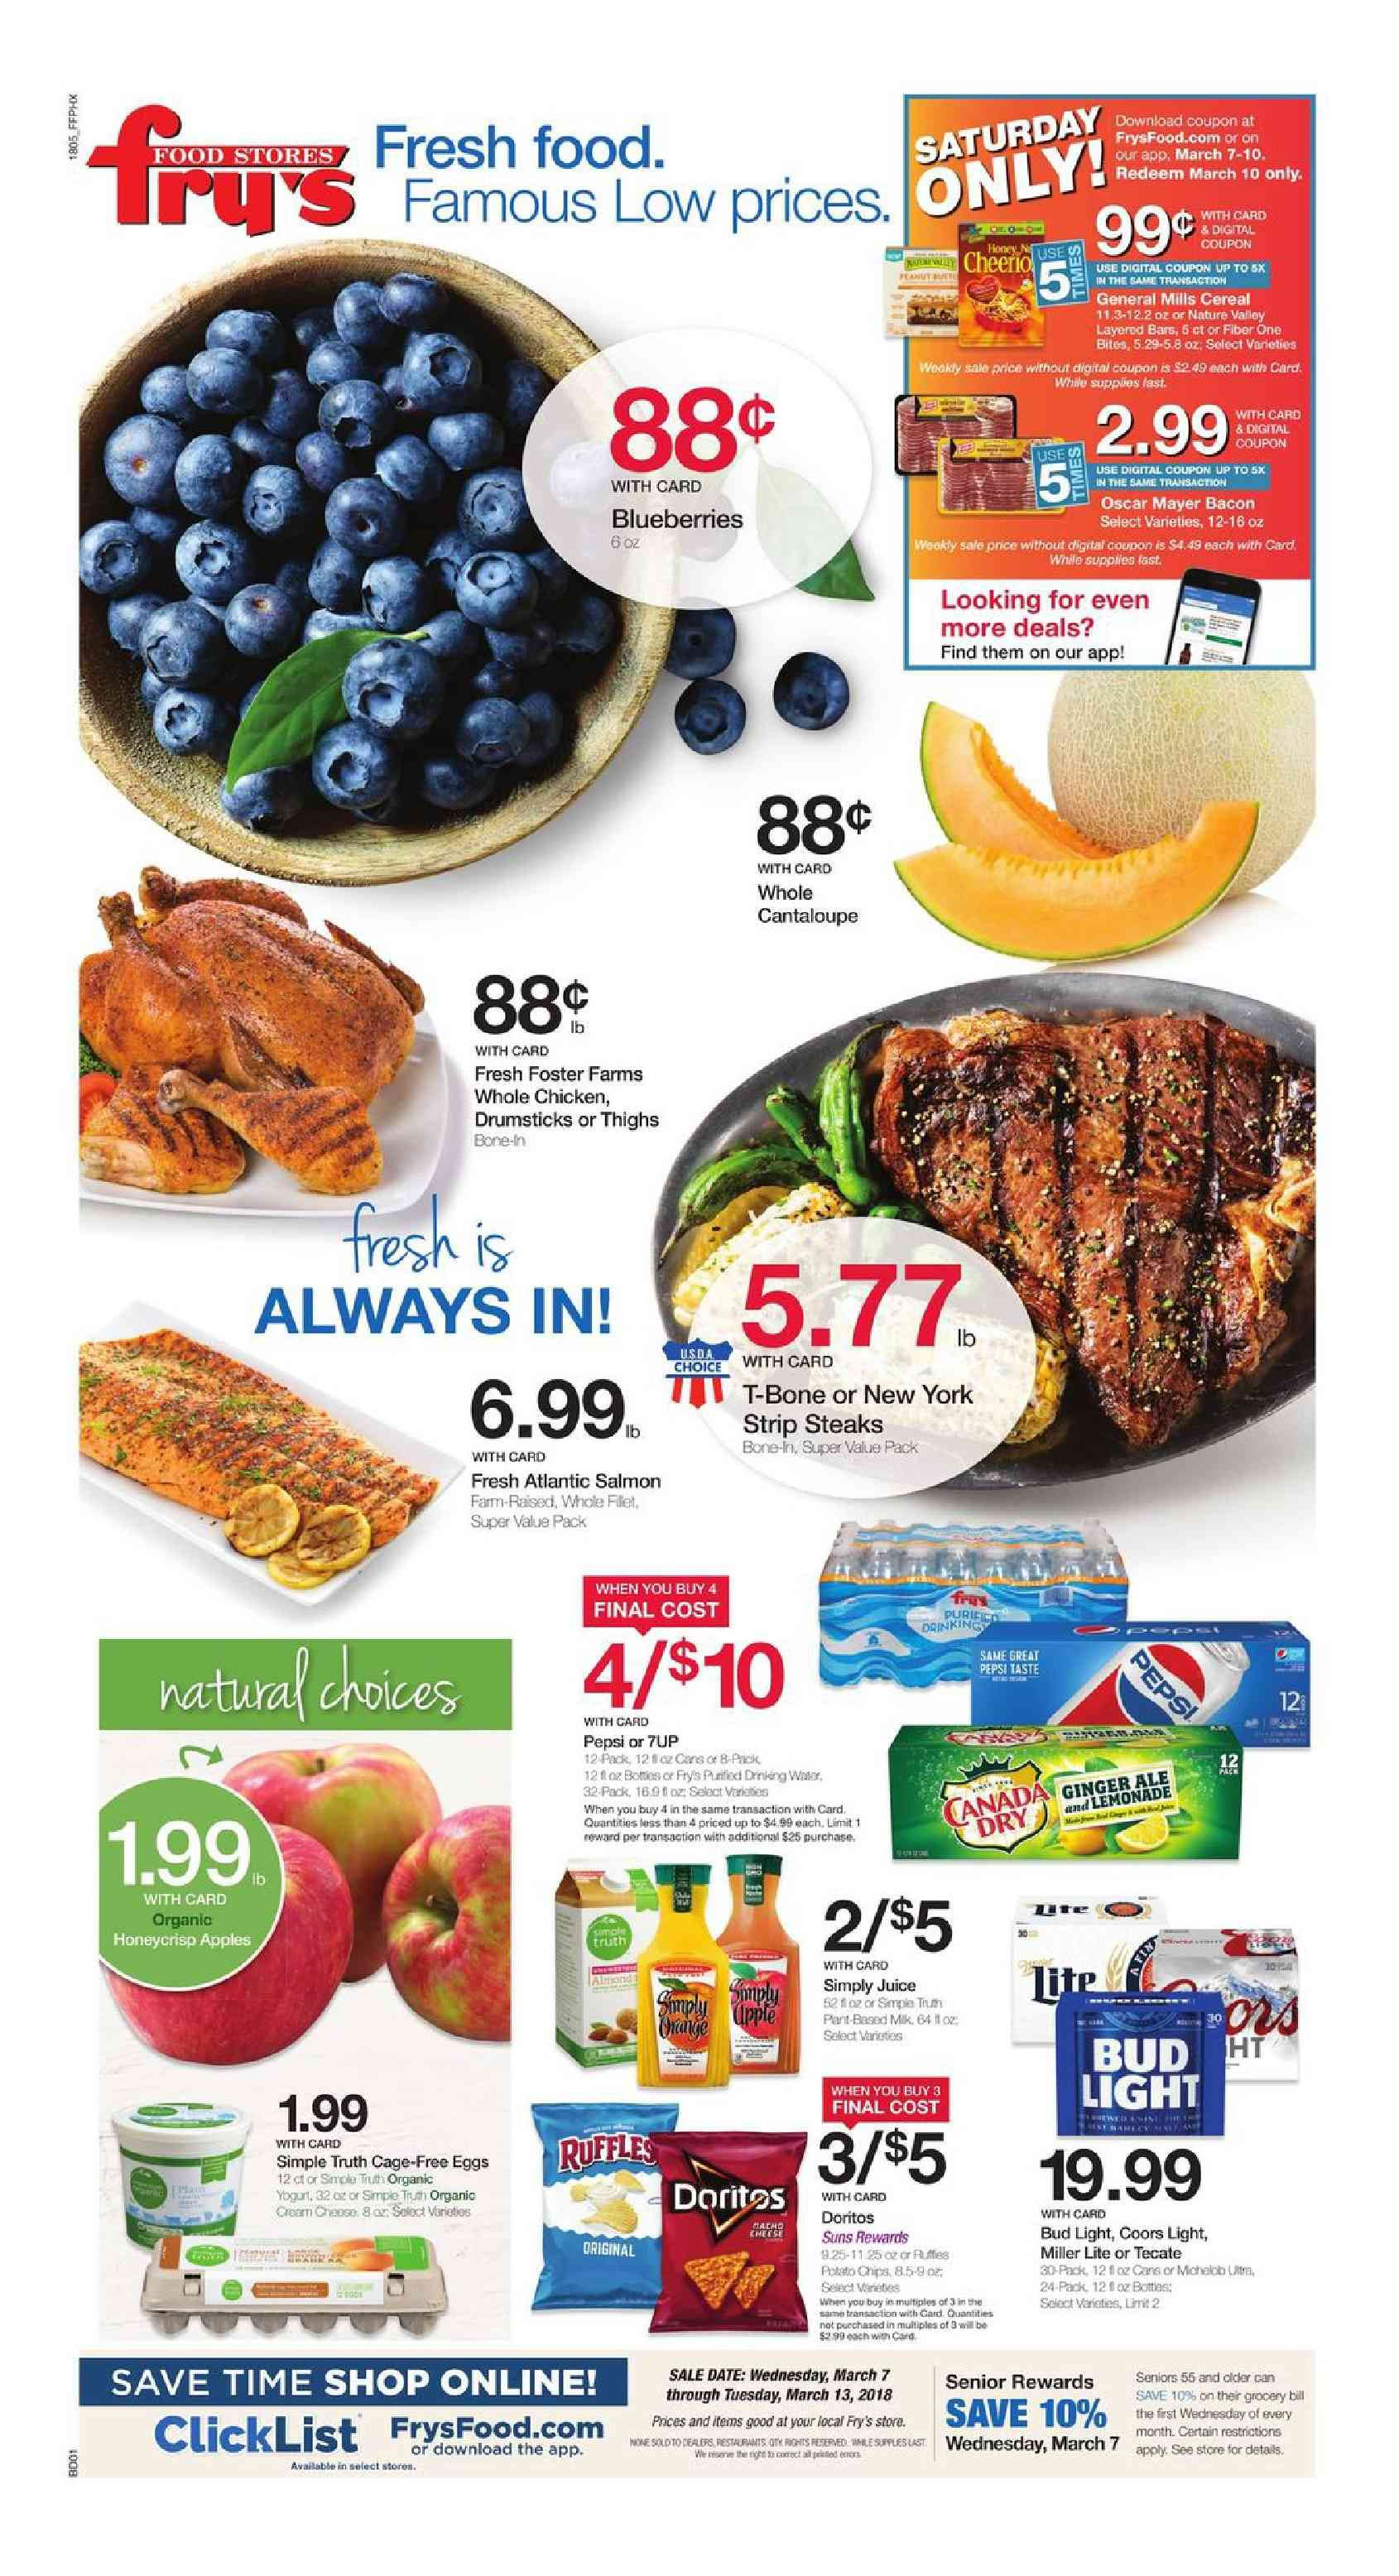 image regarding Frys Printable Coupons titled Frys Foodstuff Weekly advert Flyer January 16 - 22, 2019 Weekly Advert